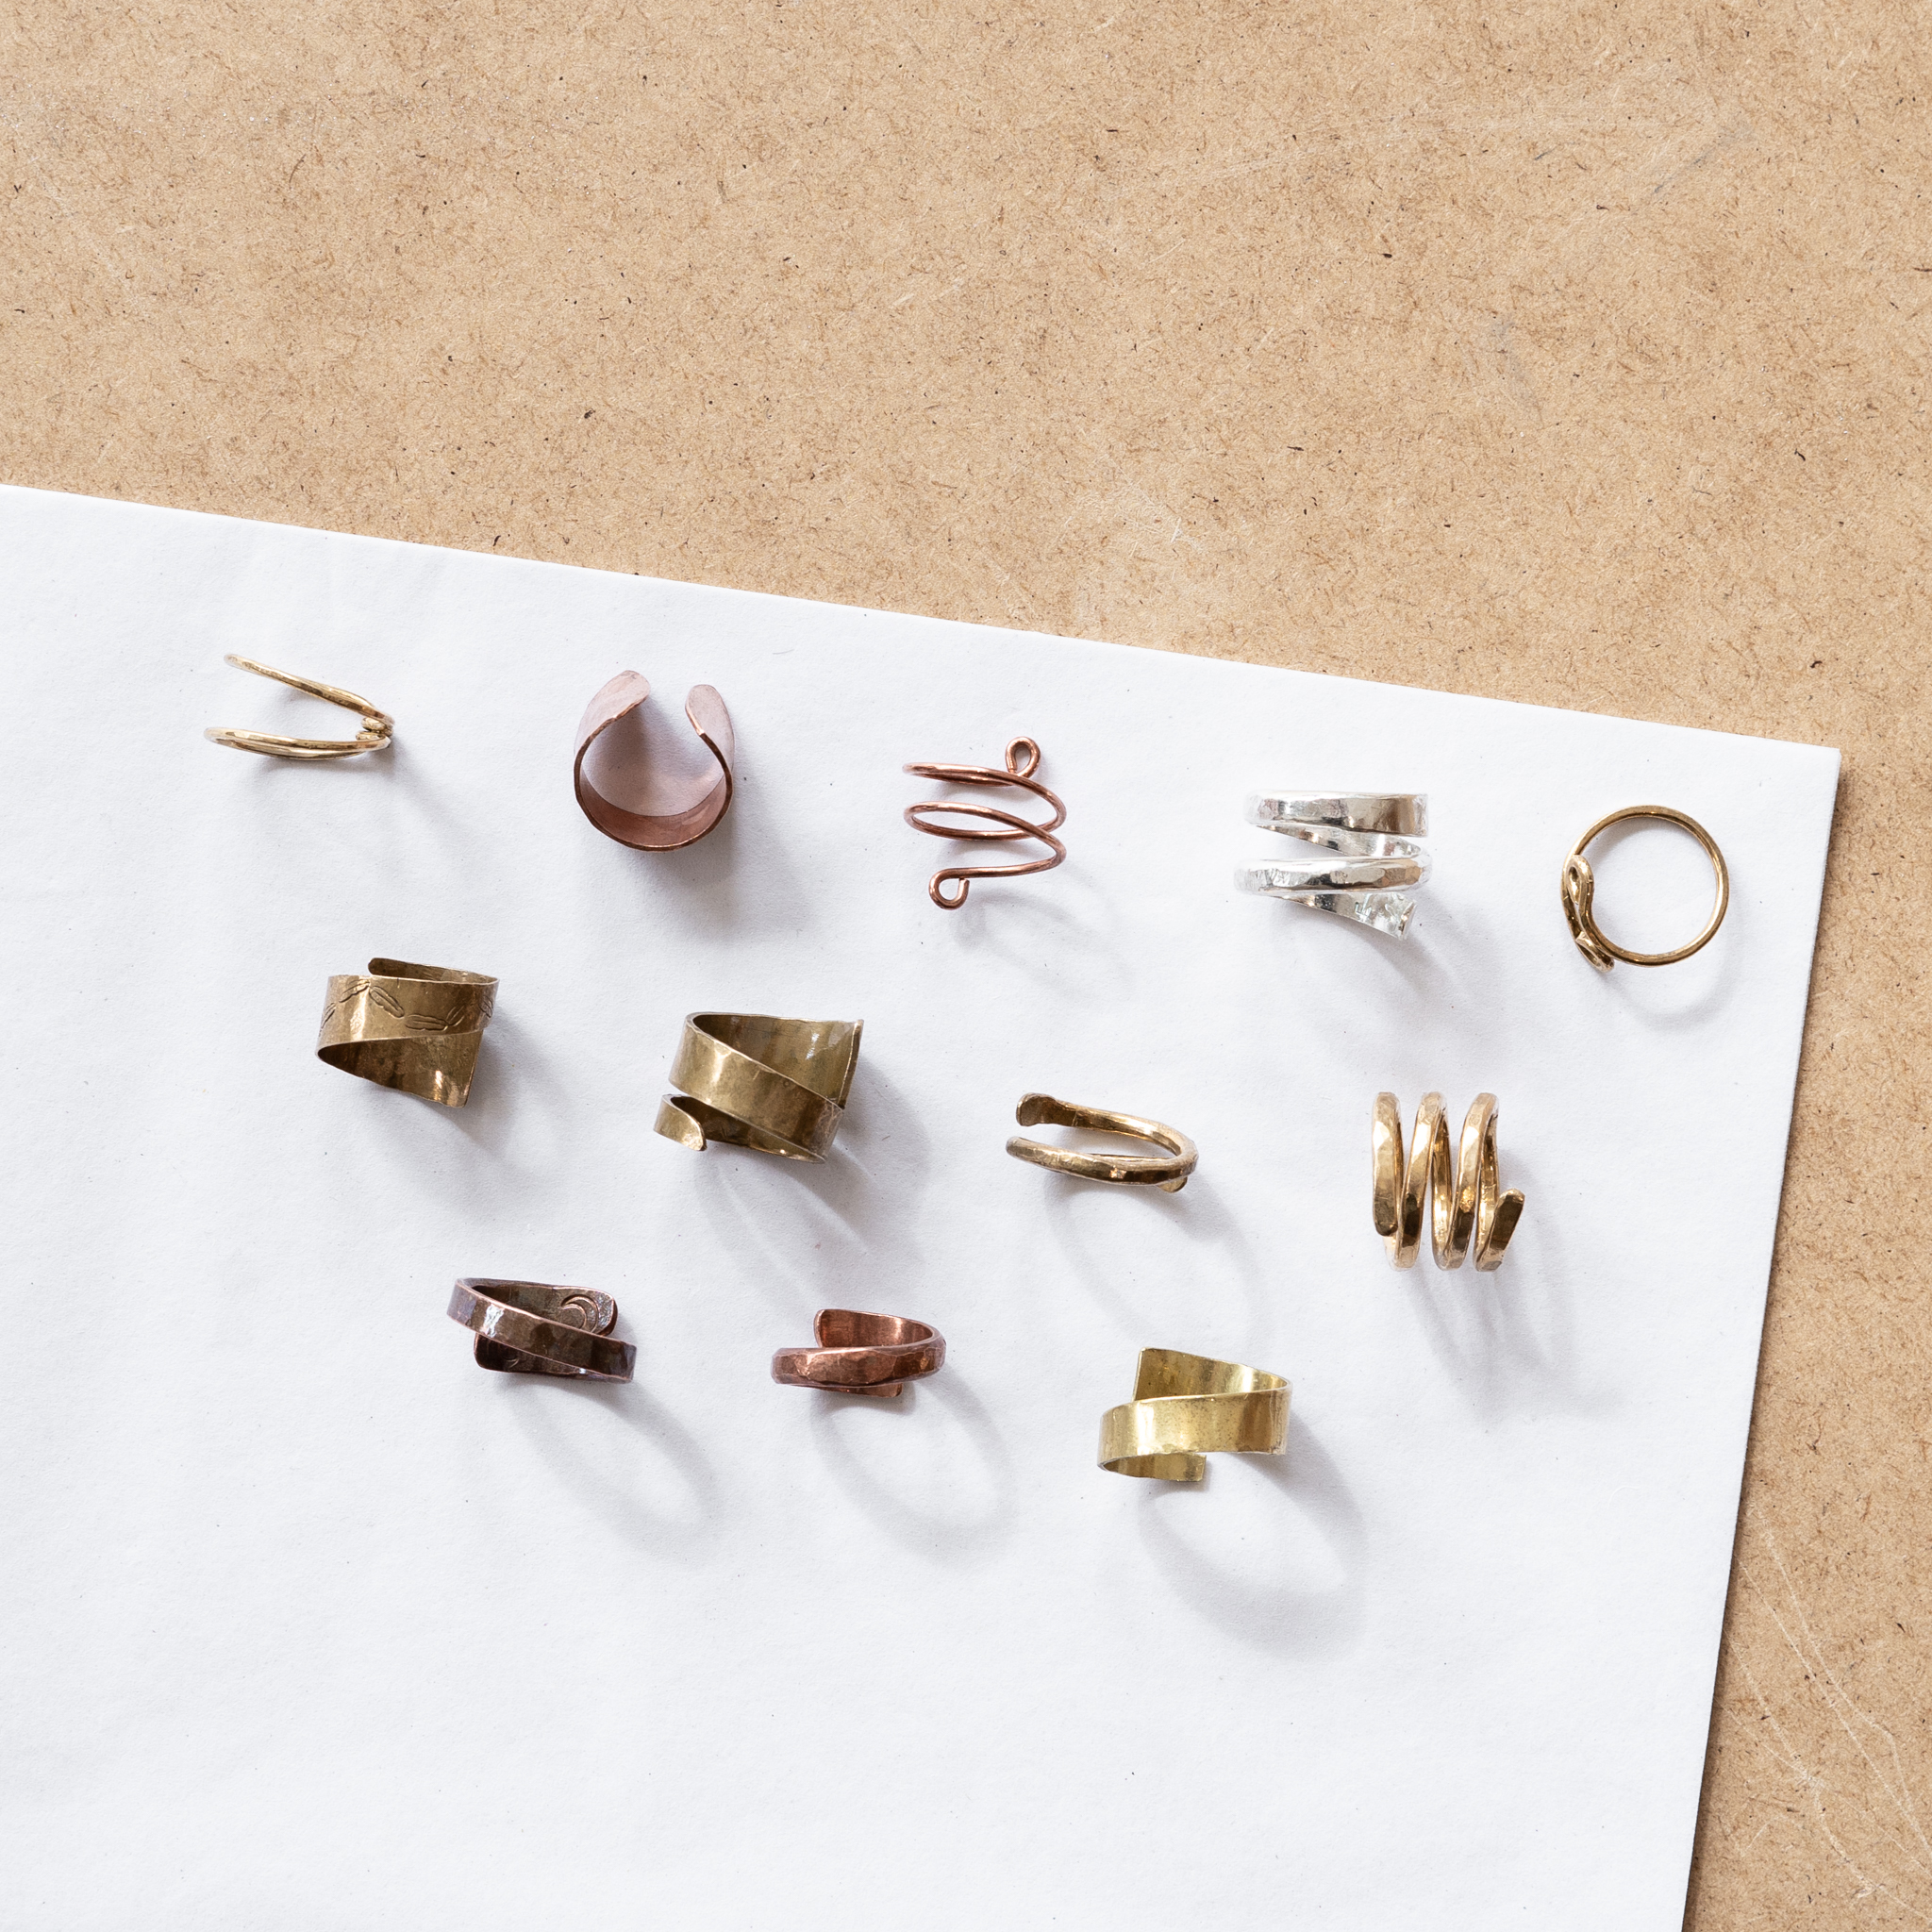 Wrap Ring Class - $45 (brass/copper) $65 (silver)Work with wire or sheet metal to create a ring that wraps around the finger (not soldered) (*easy to gift, as wrap rings allow for some flexibility in size!).